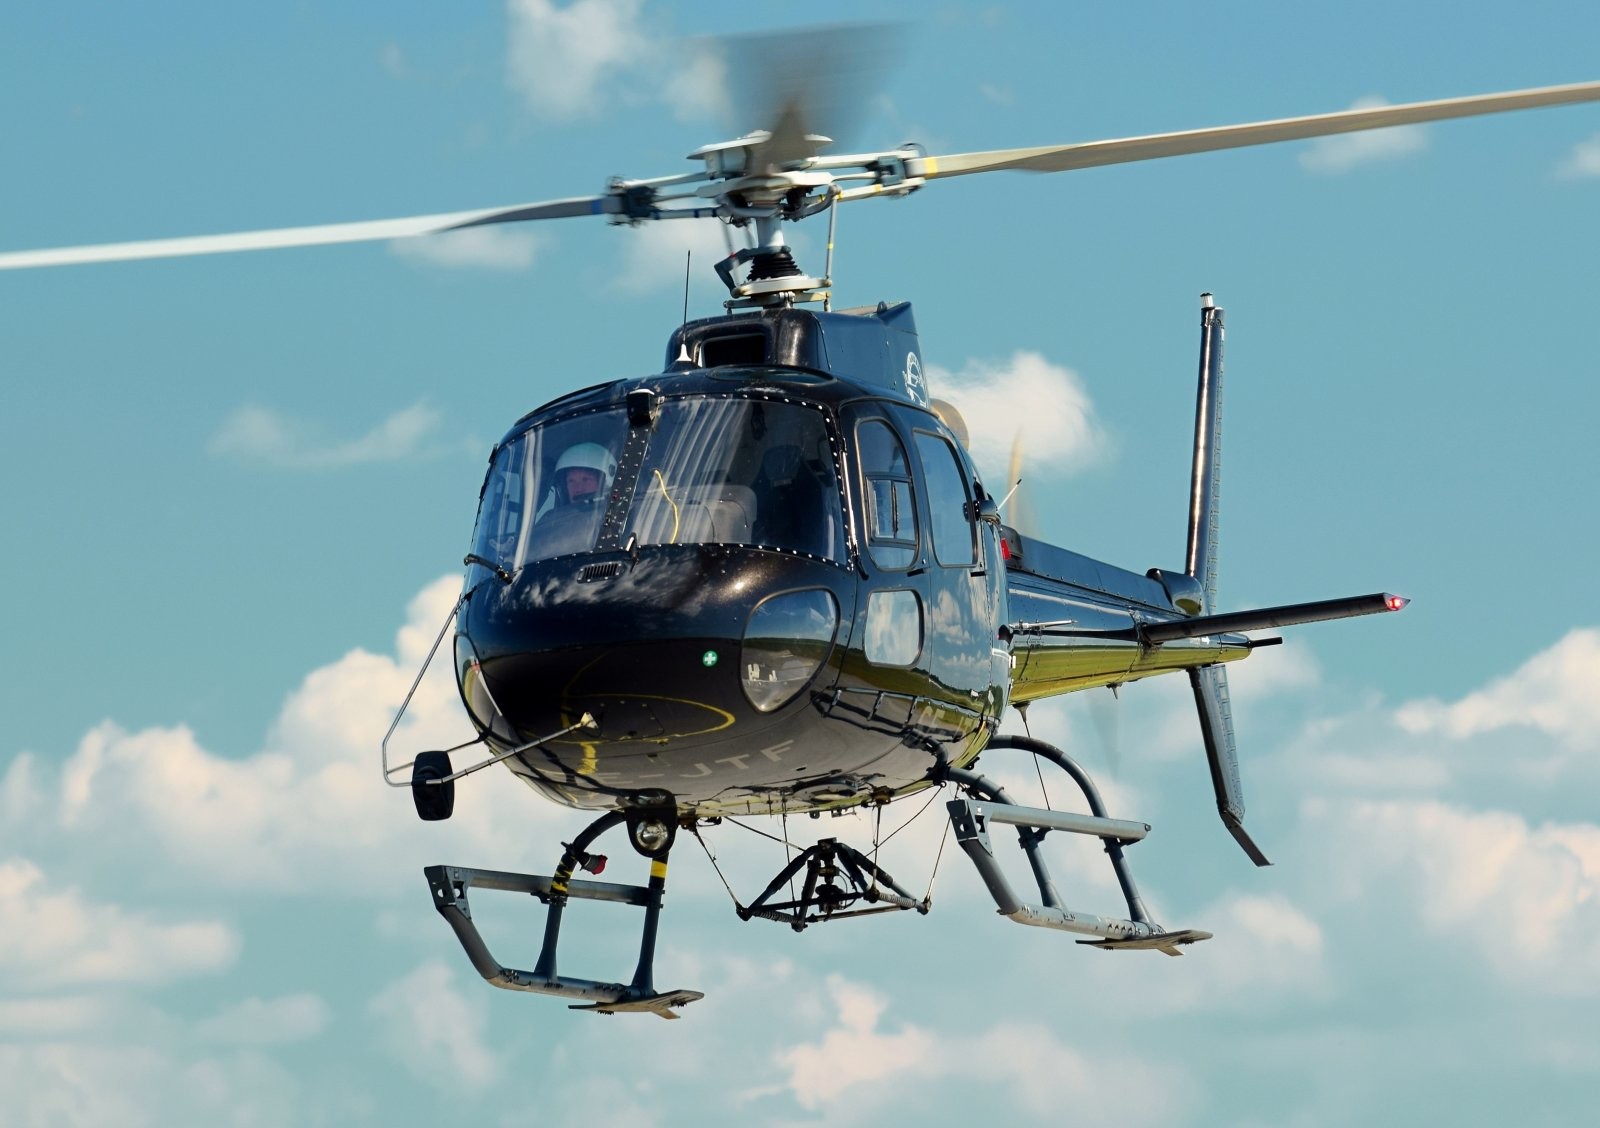 SE-JTF - Airbus Helicopters H125 - Scandair Helicopter - 26.6.2020